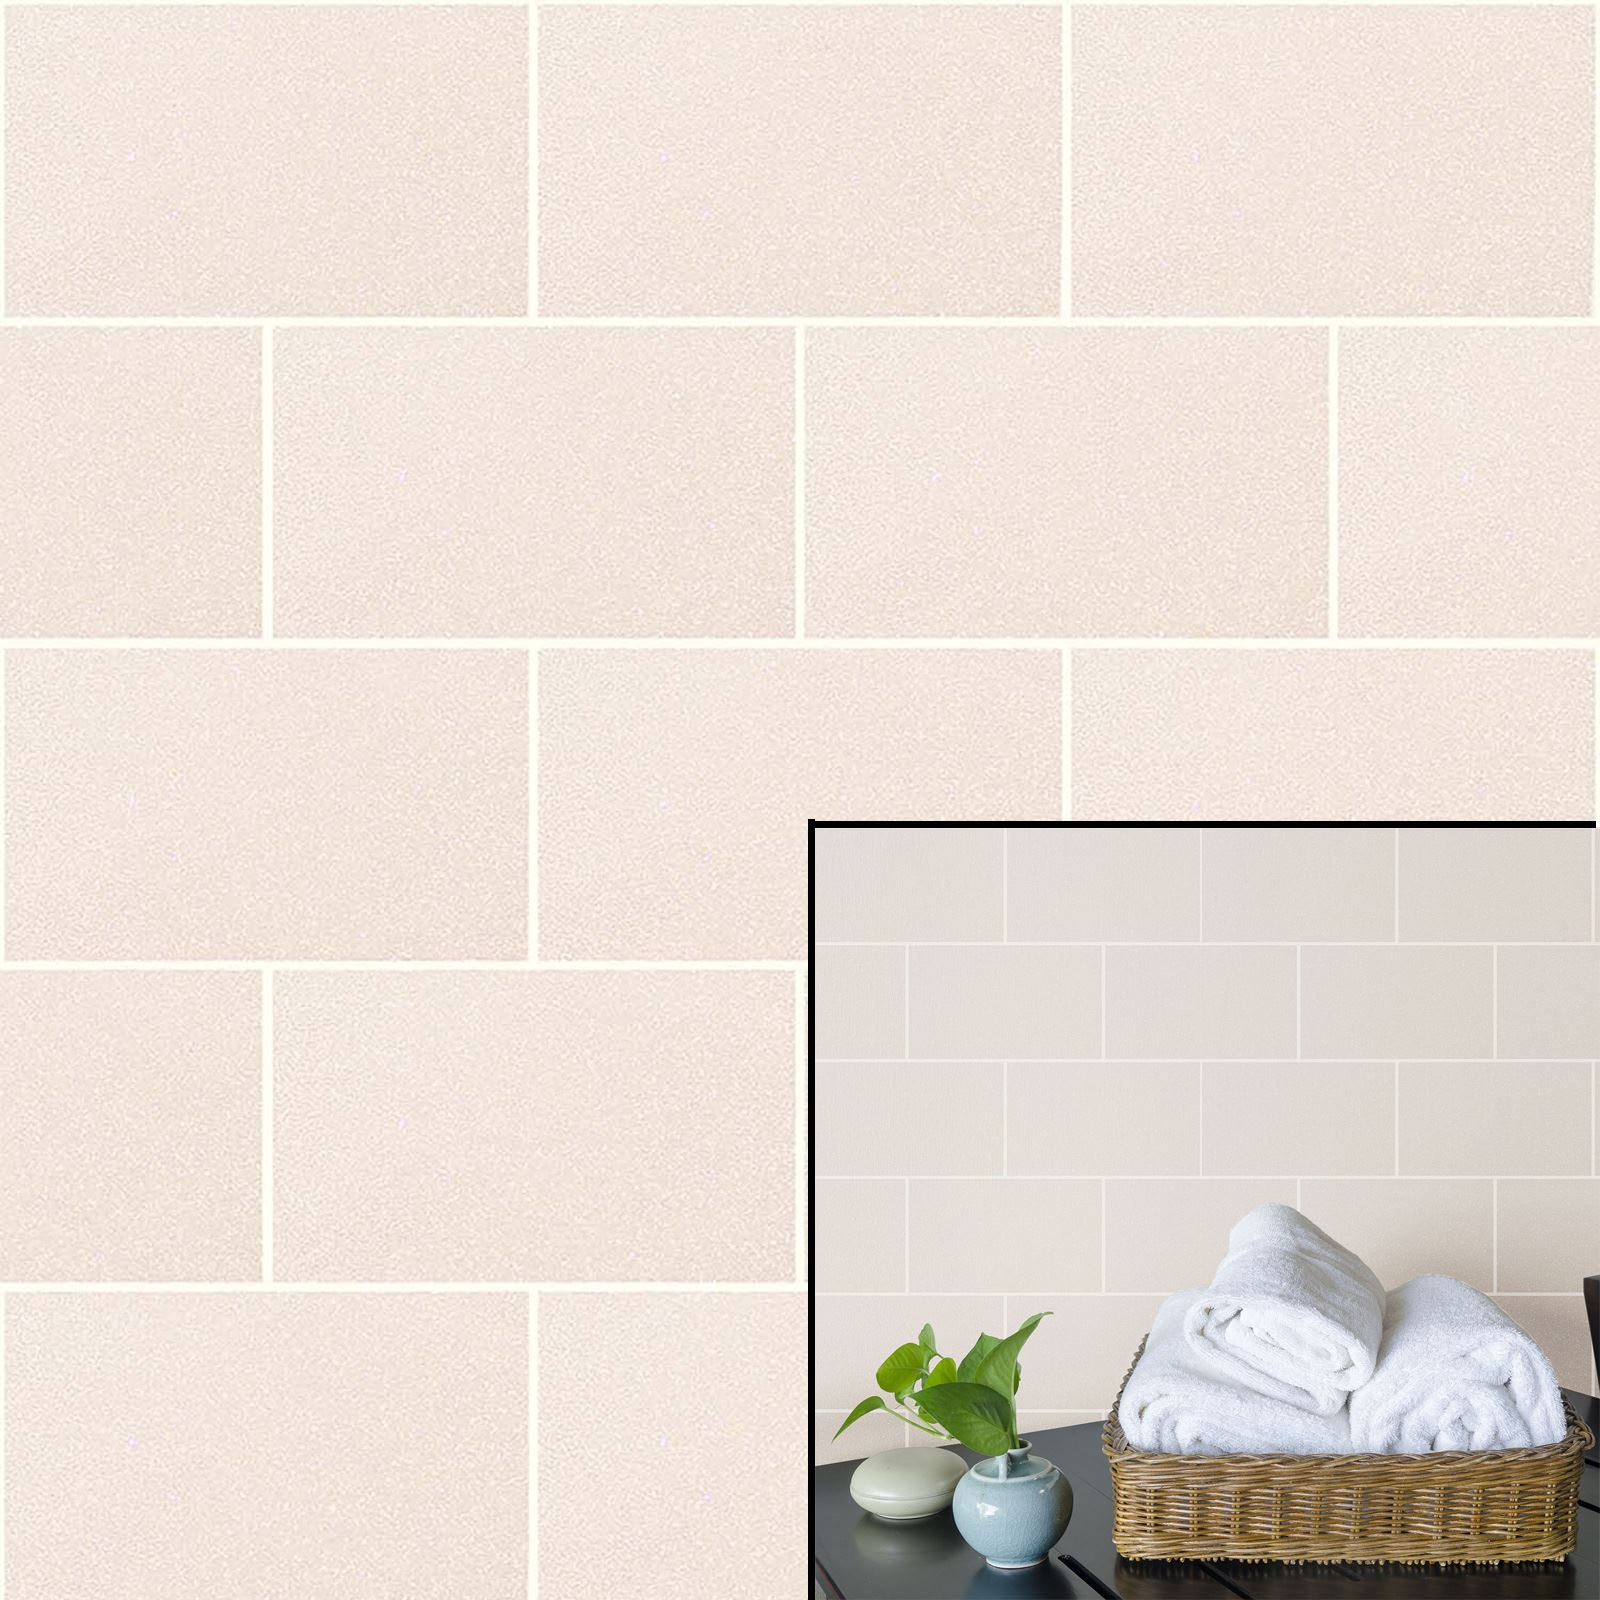 Crown london tile champagne cream urban brick effect glitter feature make your walls sparkle and be effortlessly on trende crown london tile textured wallpapers bring a contemporary urban brick effect wallpaper to any dailygadgetfo Images